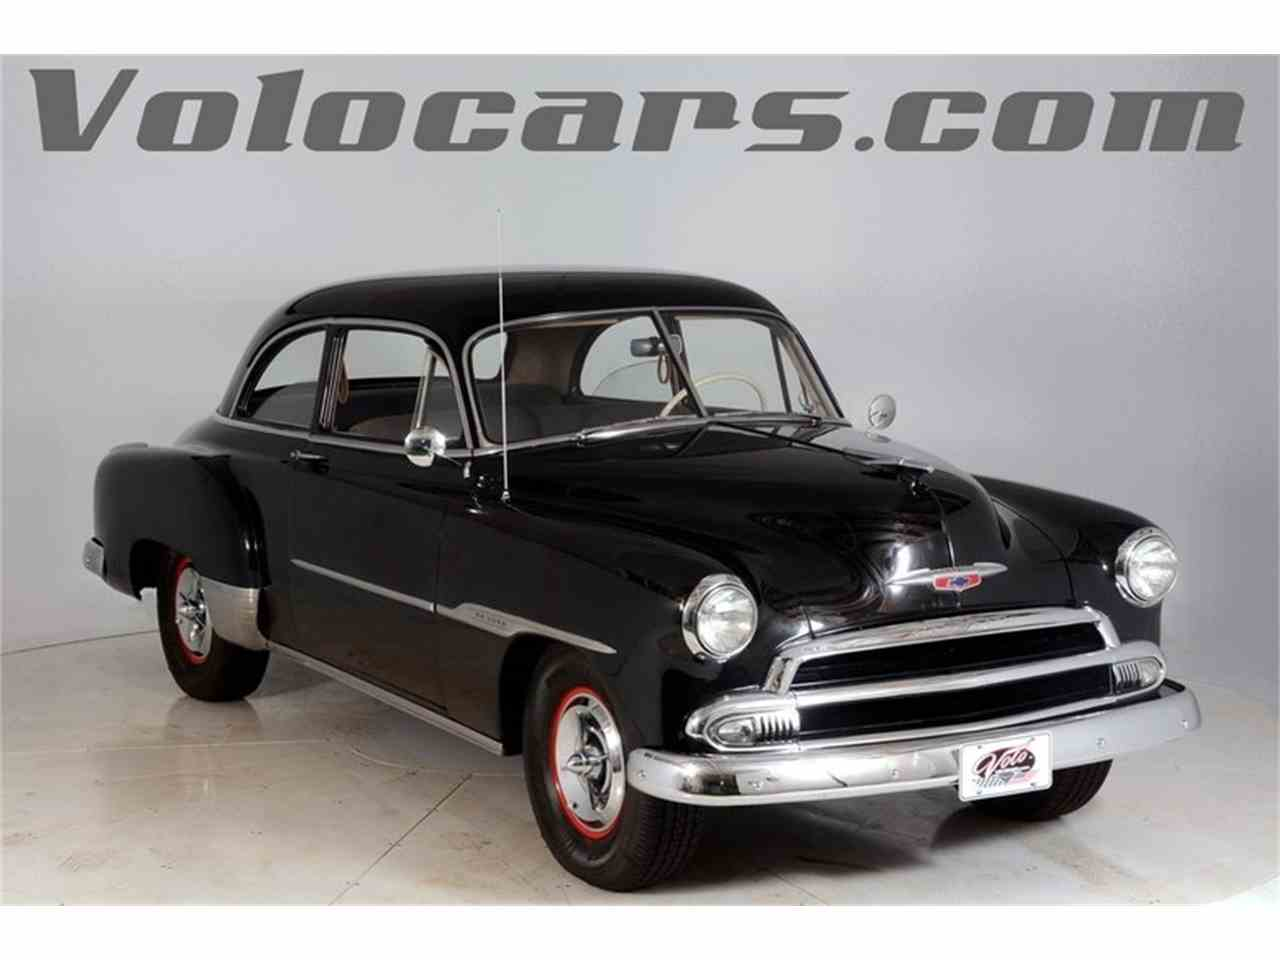 All Chevy 1951 chevy deluxe for sale : 1951 Chevrolet Styleline Deluxe for Sale | ClassicCars.com | CC-997854